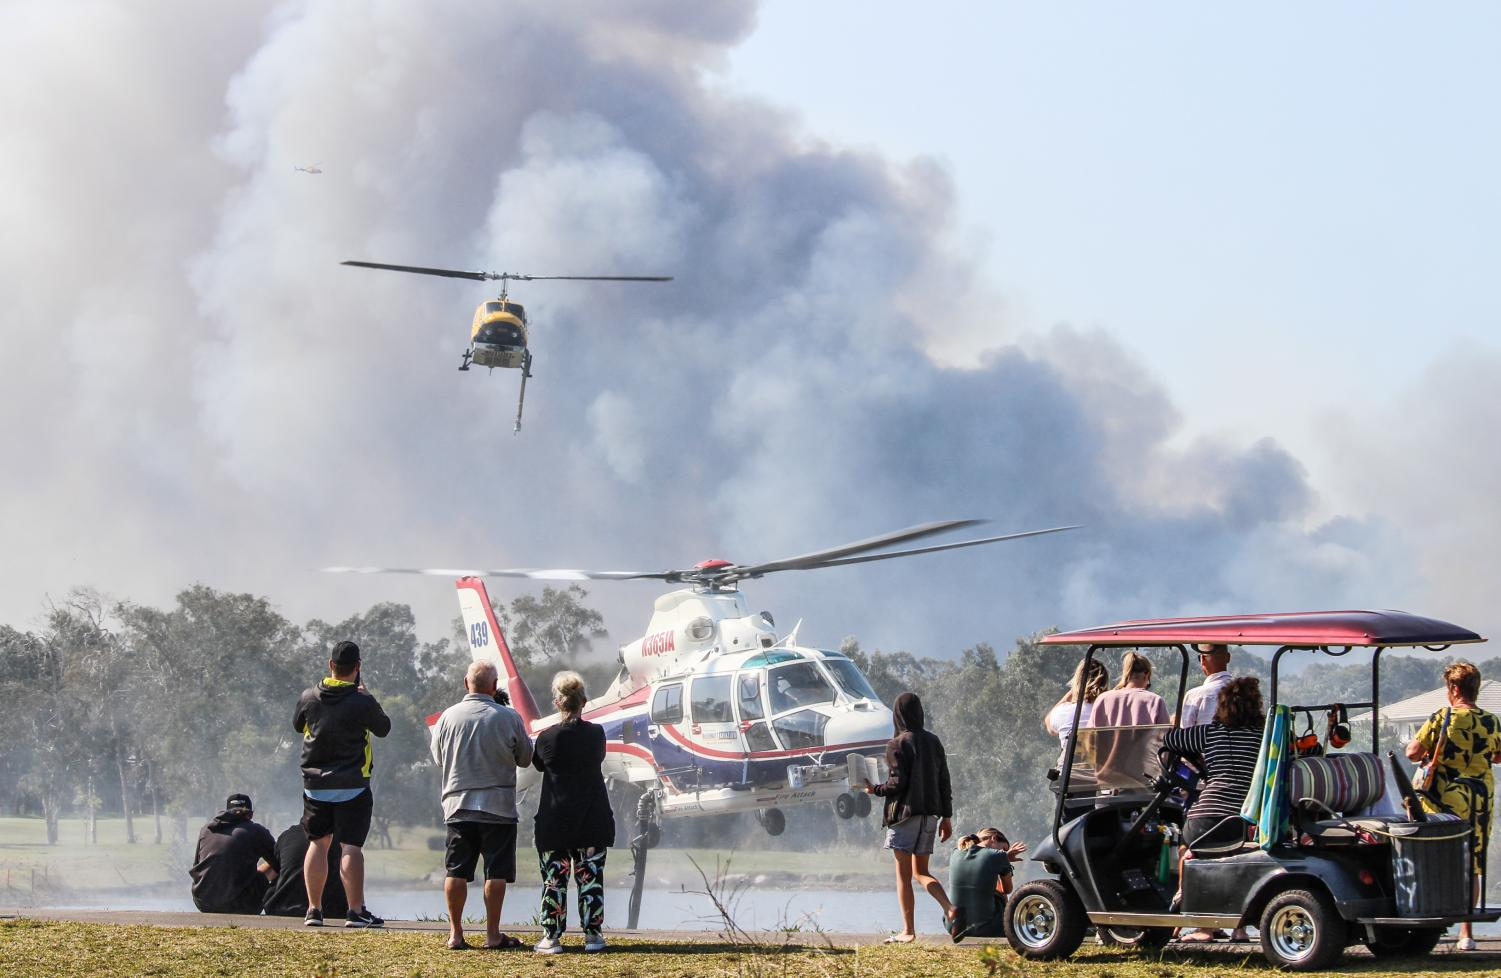 Two water-bombing helicopters swoop in to refill at the Peregian Springs Golf Club before flying back to fight the bushfire that threatened the area on September 10.